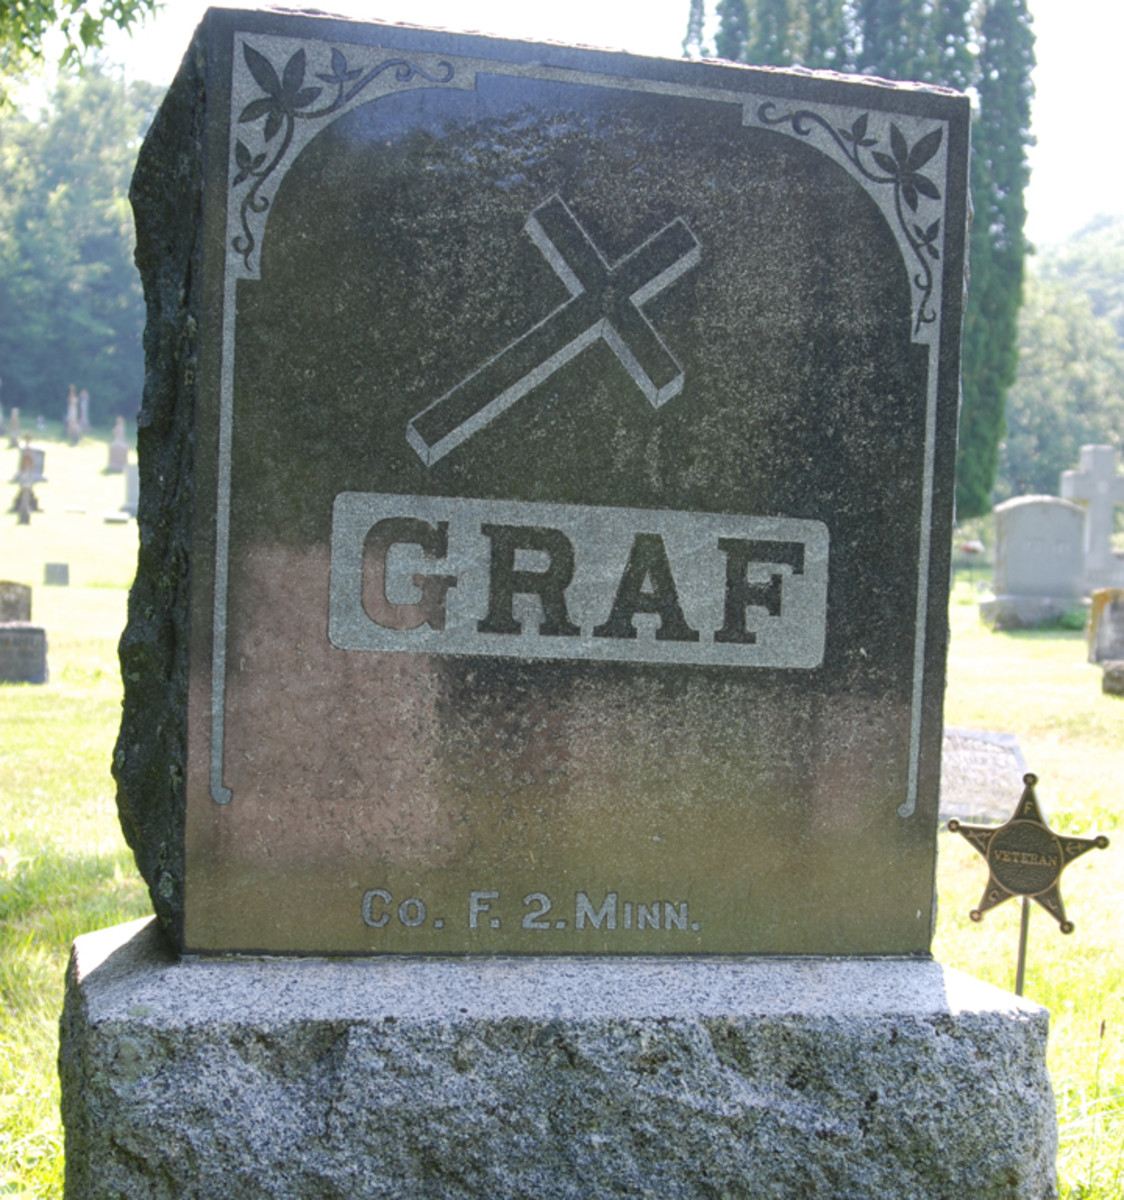 Since I was a boy, Bernhardt Graf's tombstone has been replaced with this more modern representation. The family did remember his service in the 2nd Minnesota when they had it engraved.Since I was a boy, Bernhardt Graf's tombstone has been replaced with this more modern representation. The family did remember his service in the 2nd Minnesota when they had it engraved.